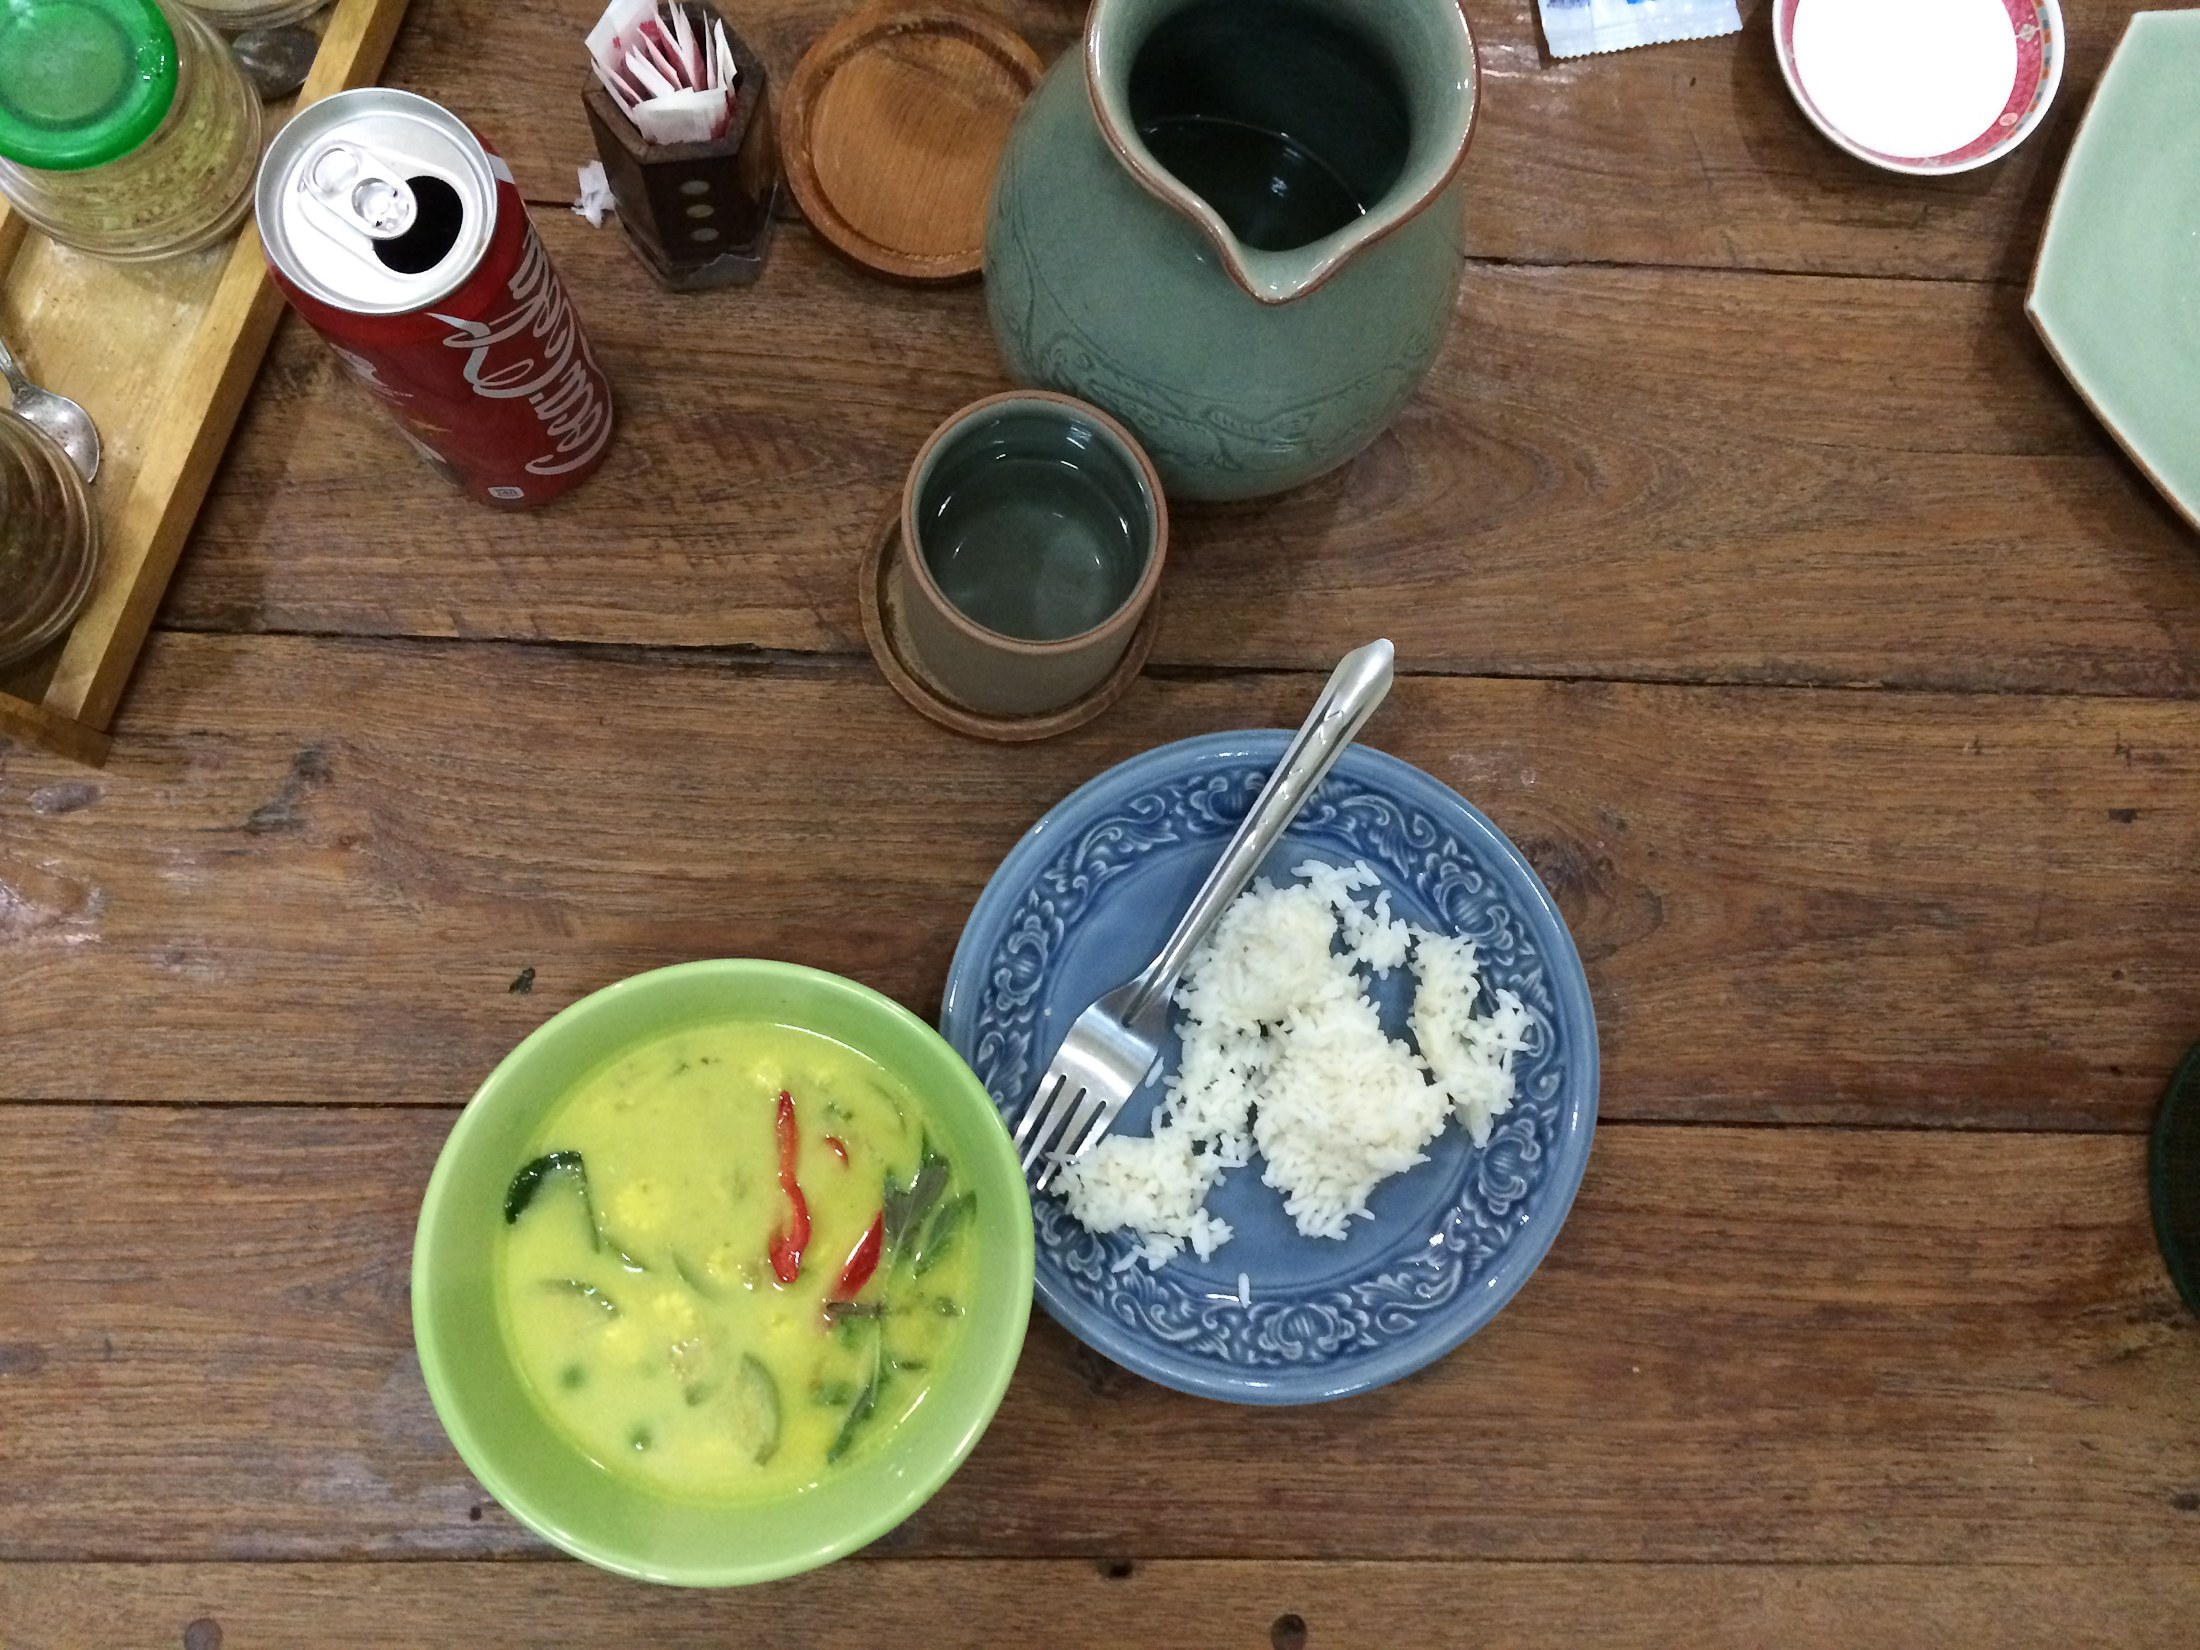 thailand chiang mai green curry mild rice sweet food sher she goes